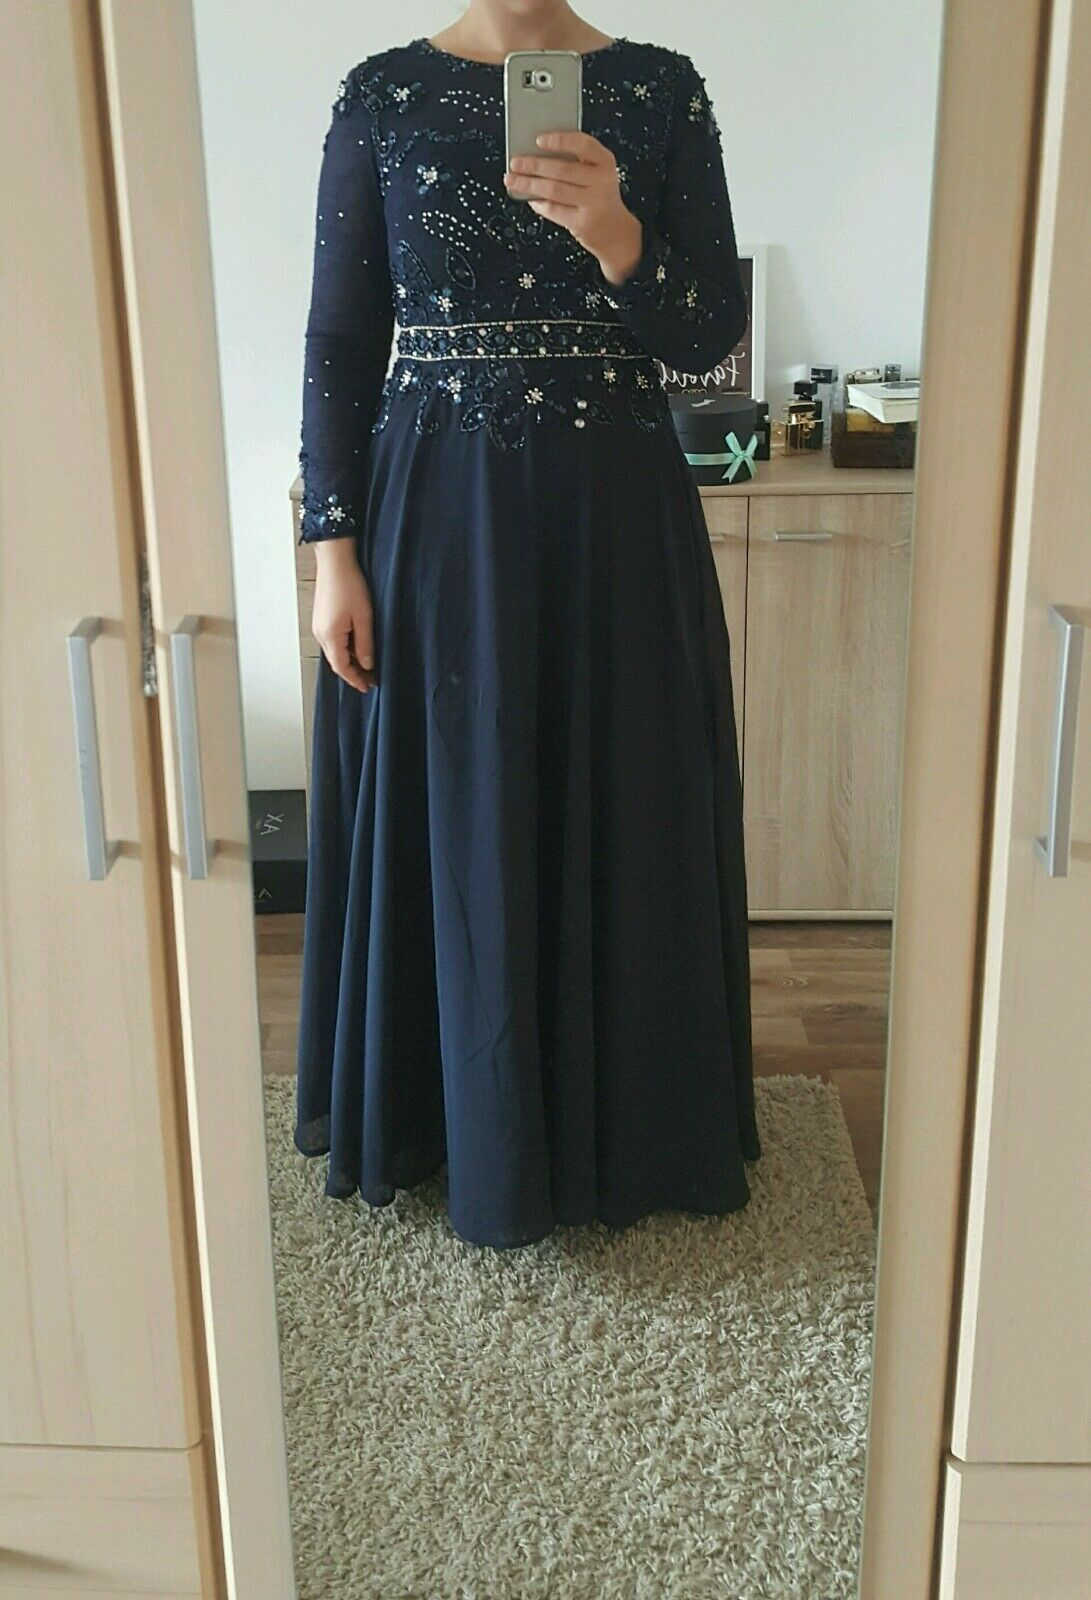 Evening dress, Größe 42, new. It was 520 when I bought it, I sell with  (neg